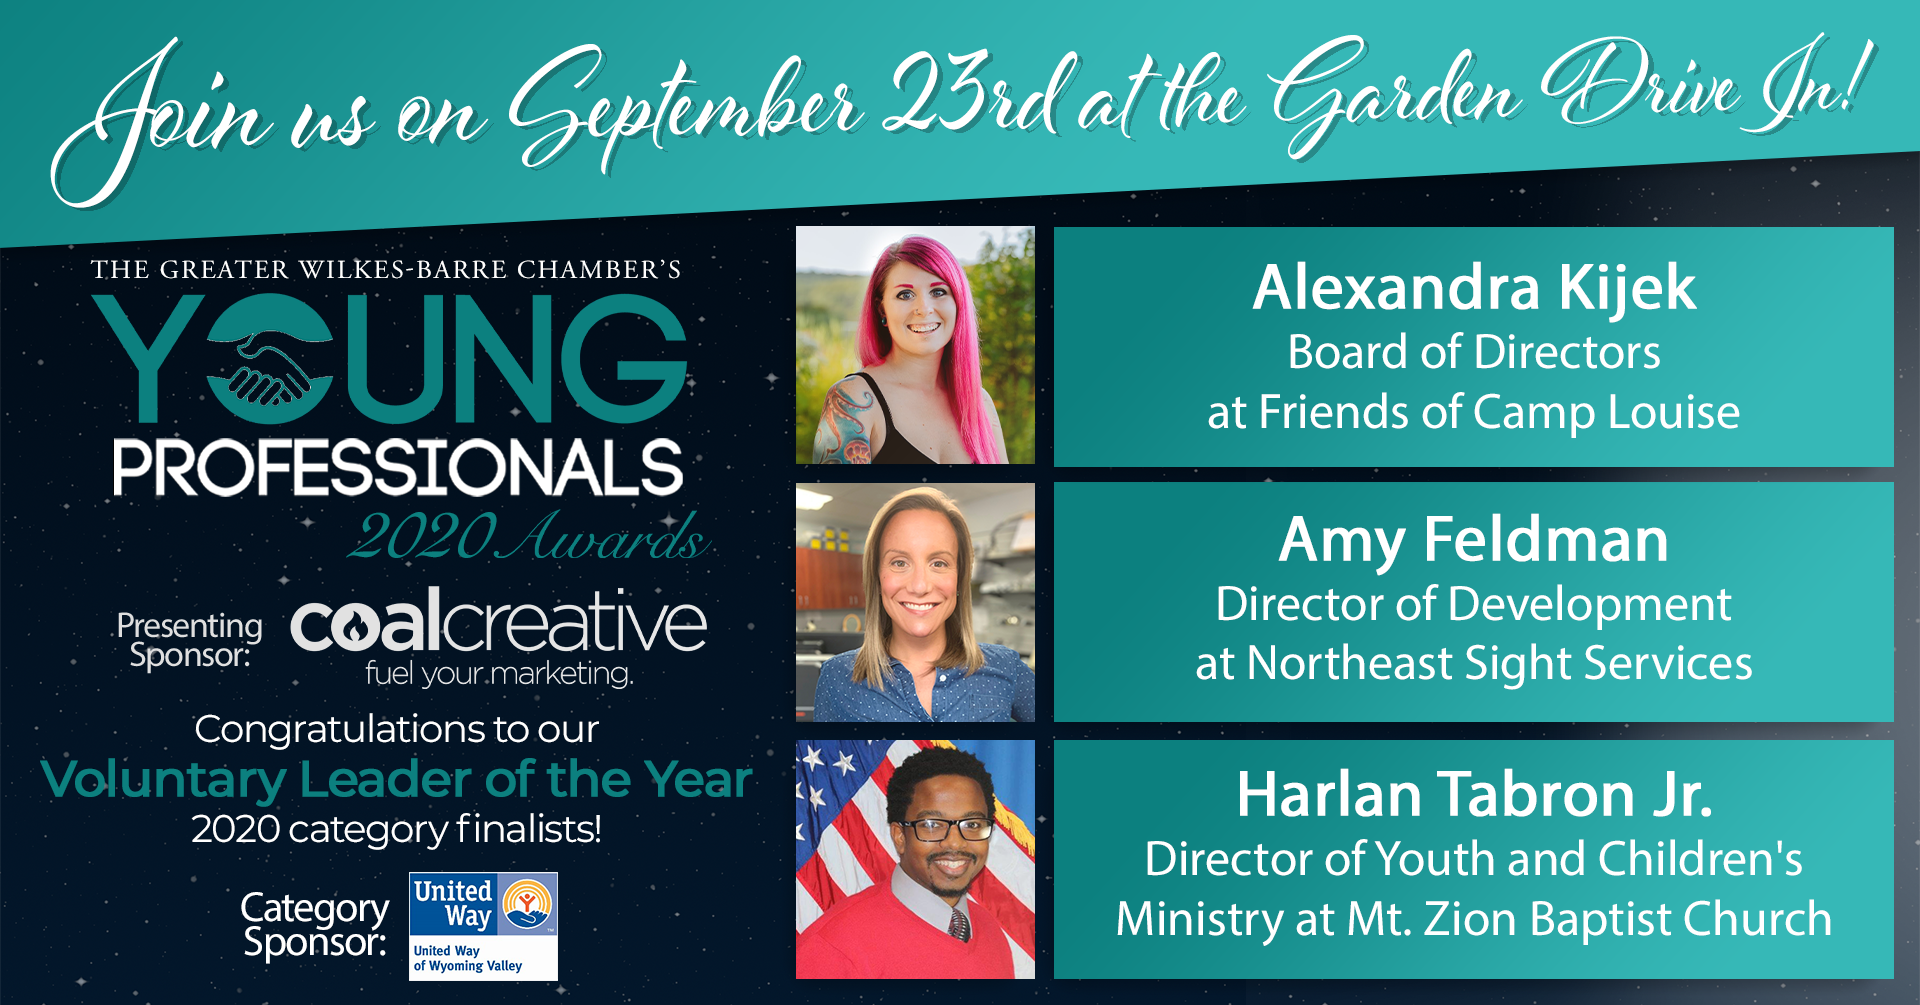 Meet the 2020 Young Professionals Category Finalists for Voluntary Leader of the Year!